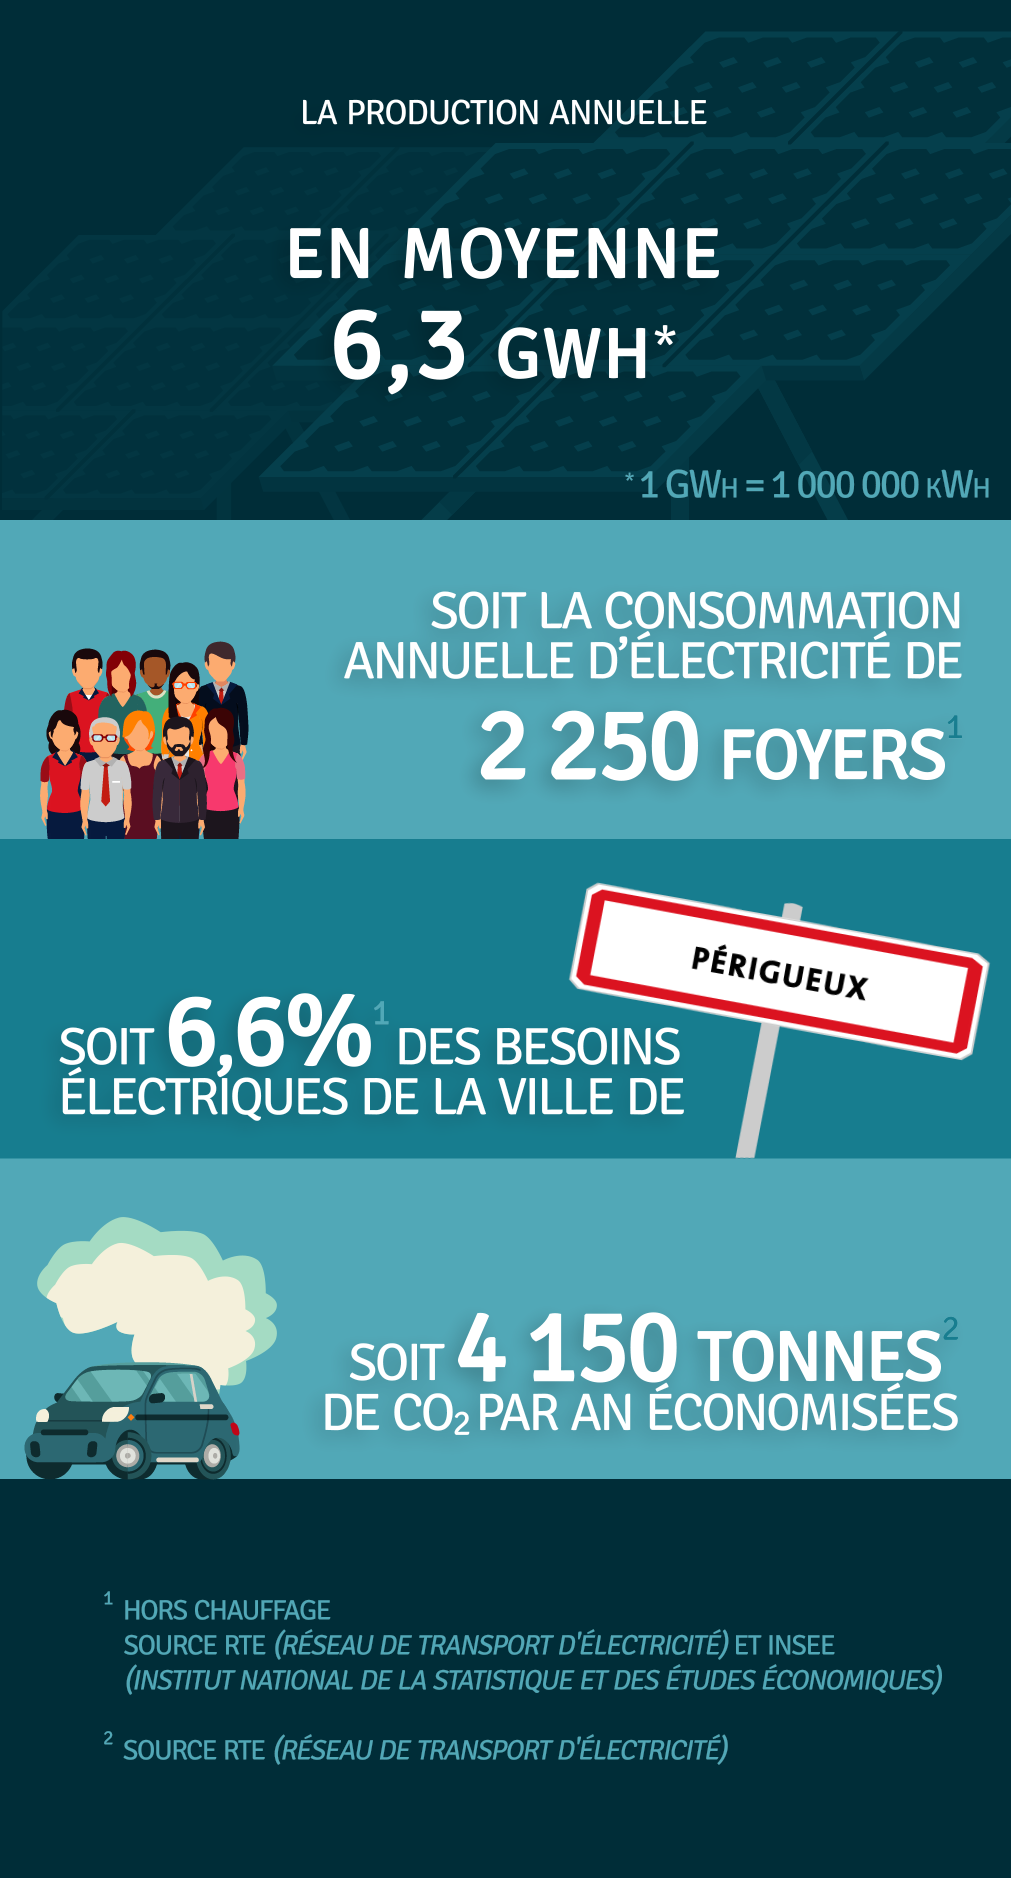 Production annuelle 6 300 000 kWh